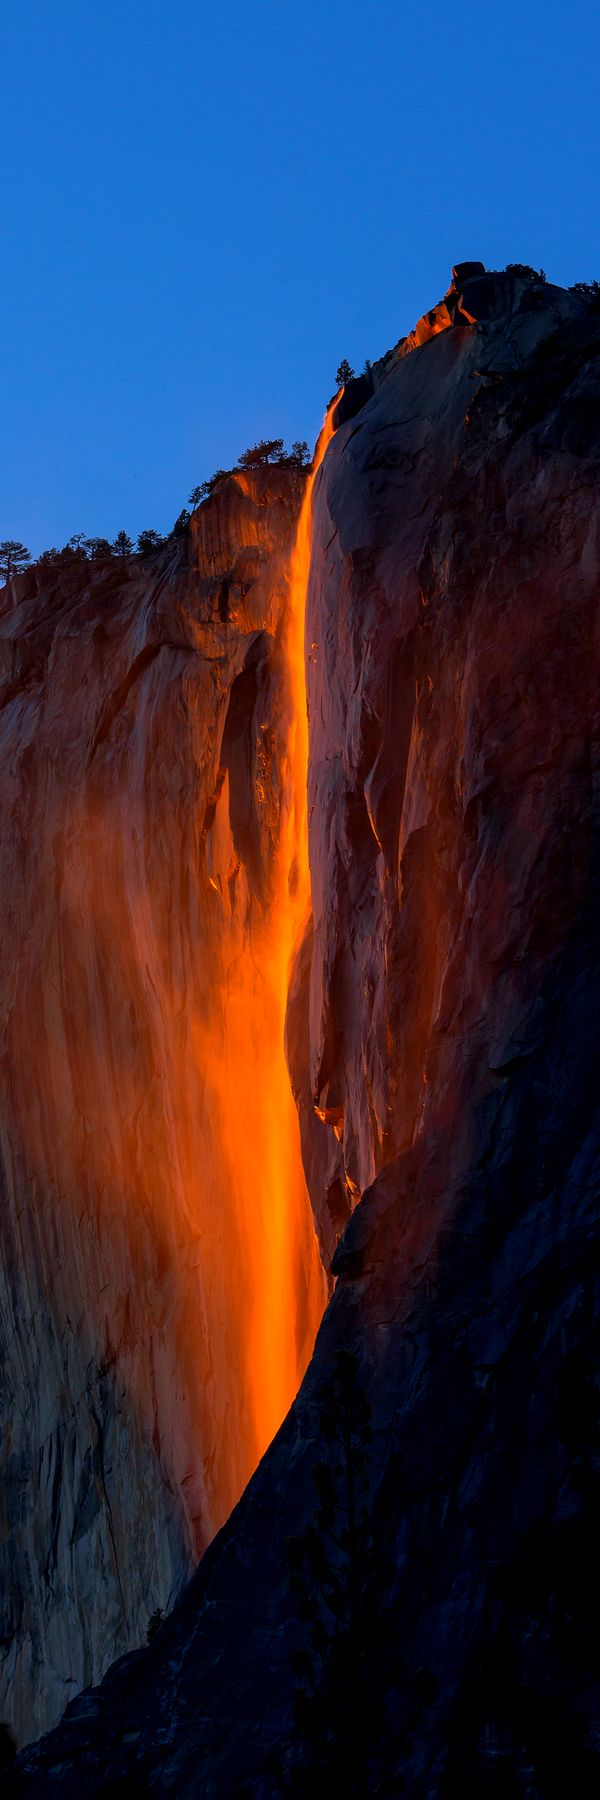 Fire Falls, Yosemite National Park